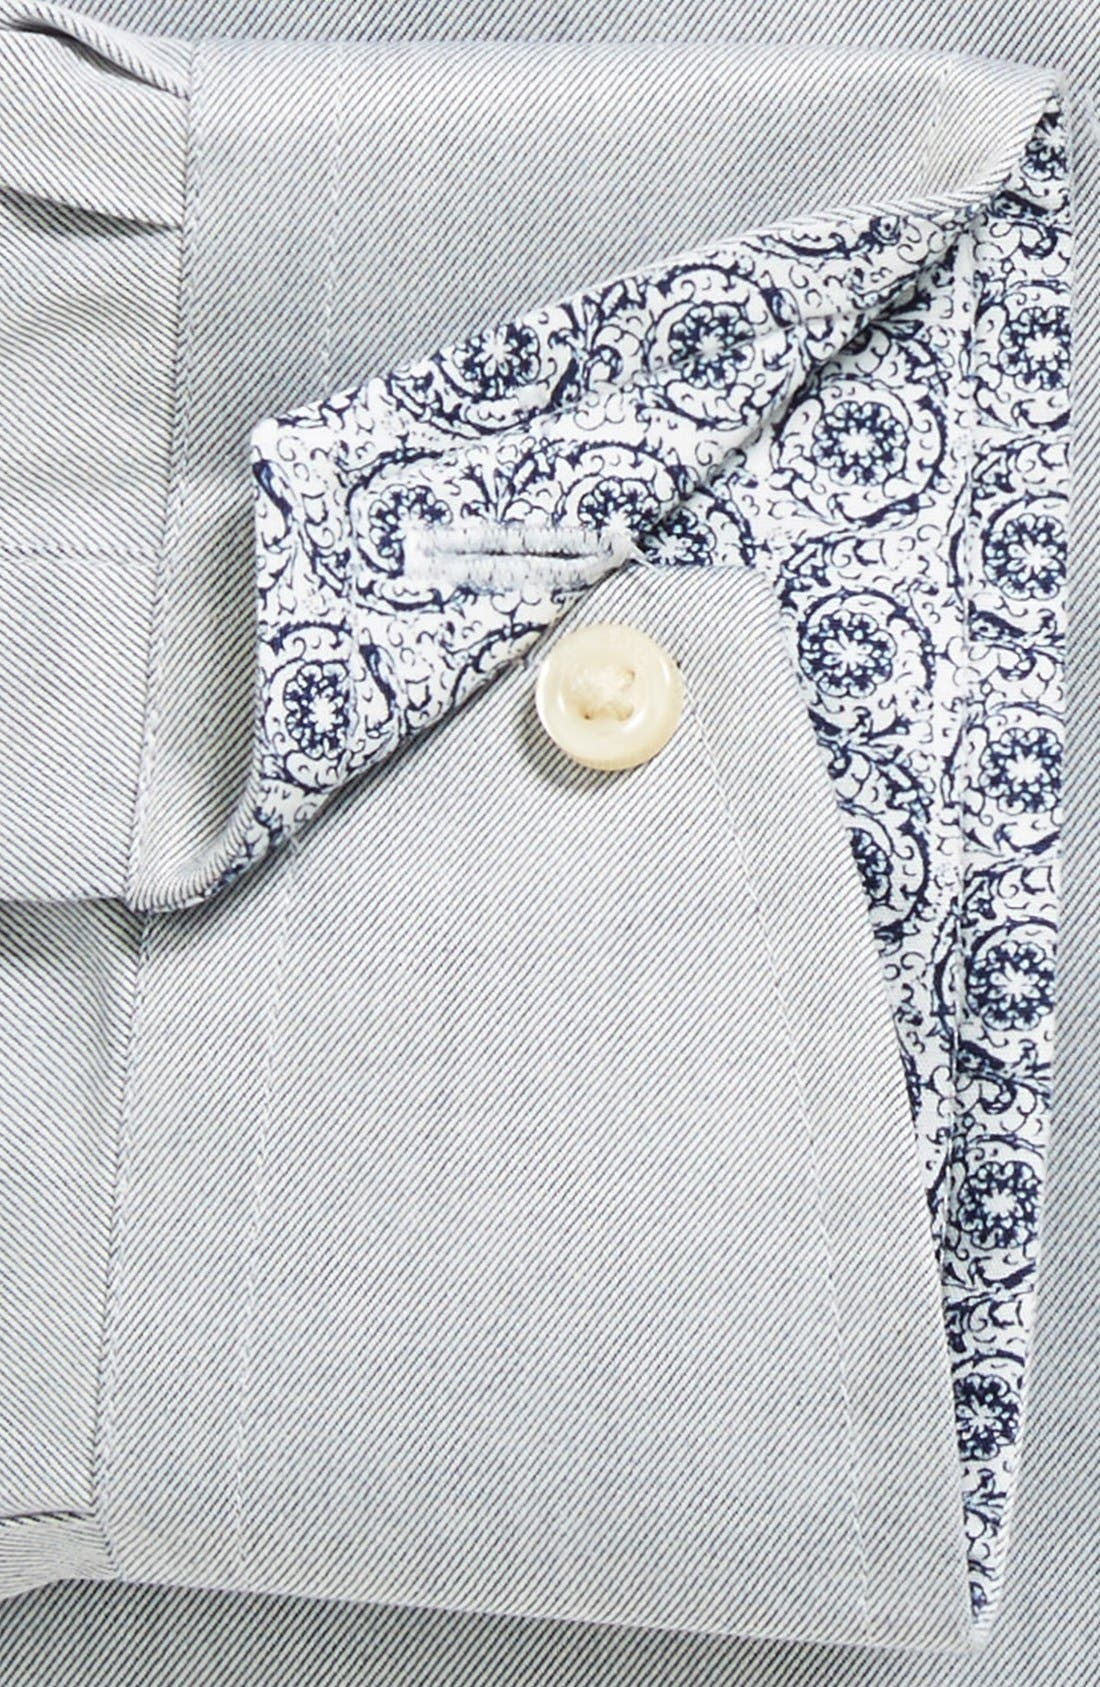 Alternate Image 2  - Ted Baker London Classic Fit Solid Dress Shirt